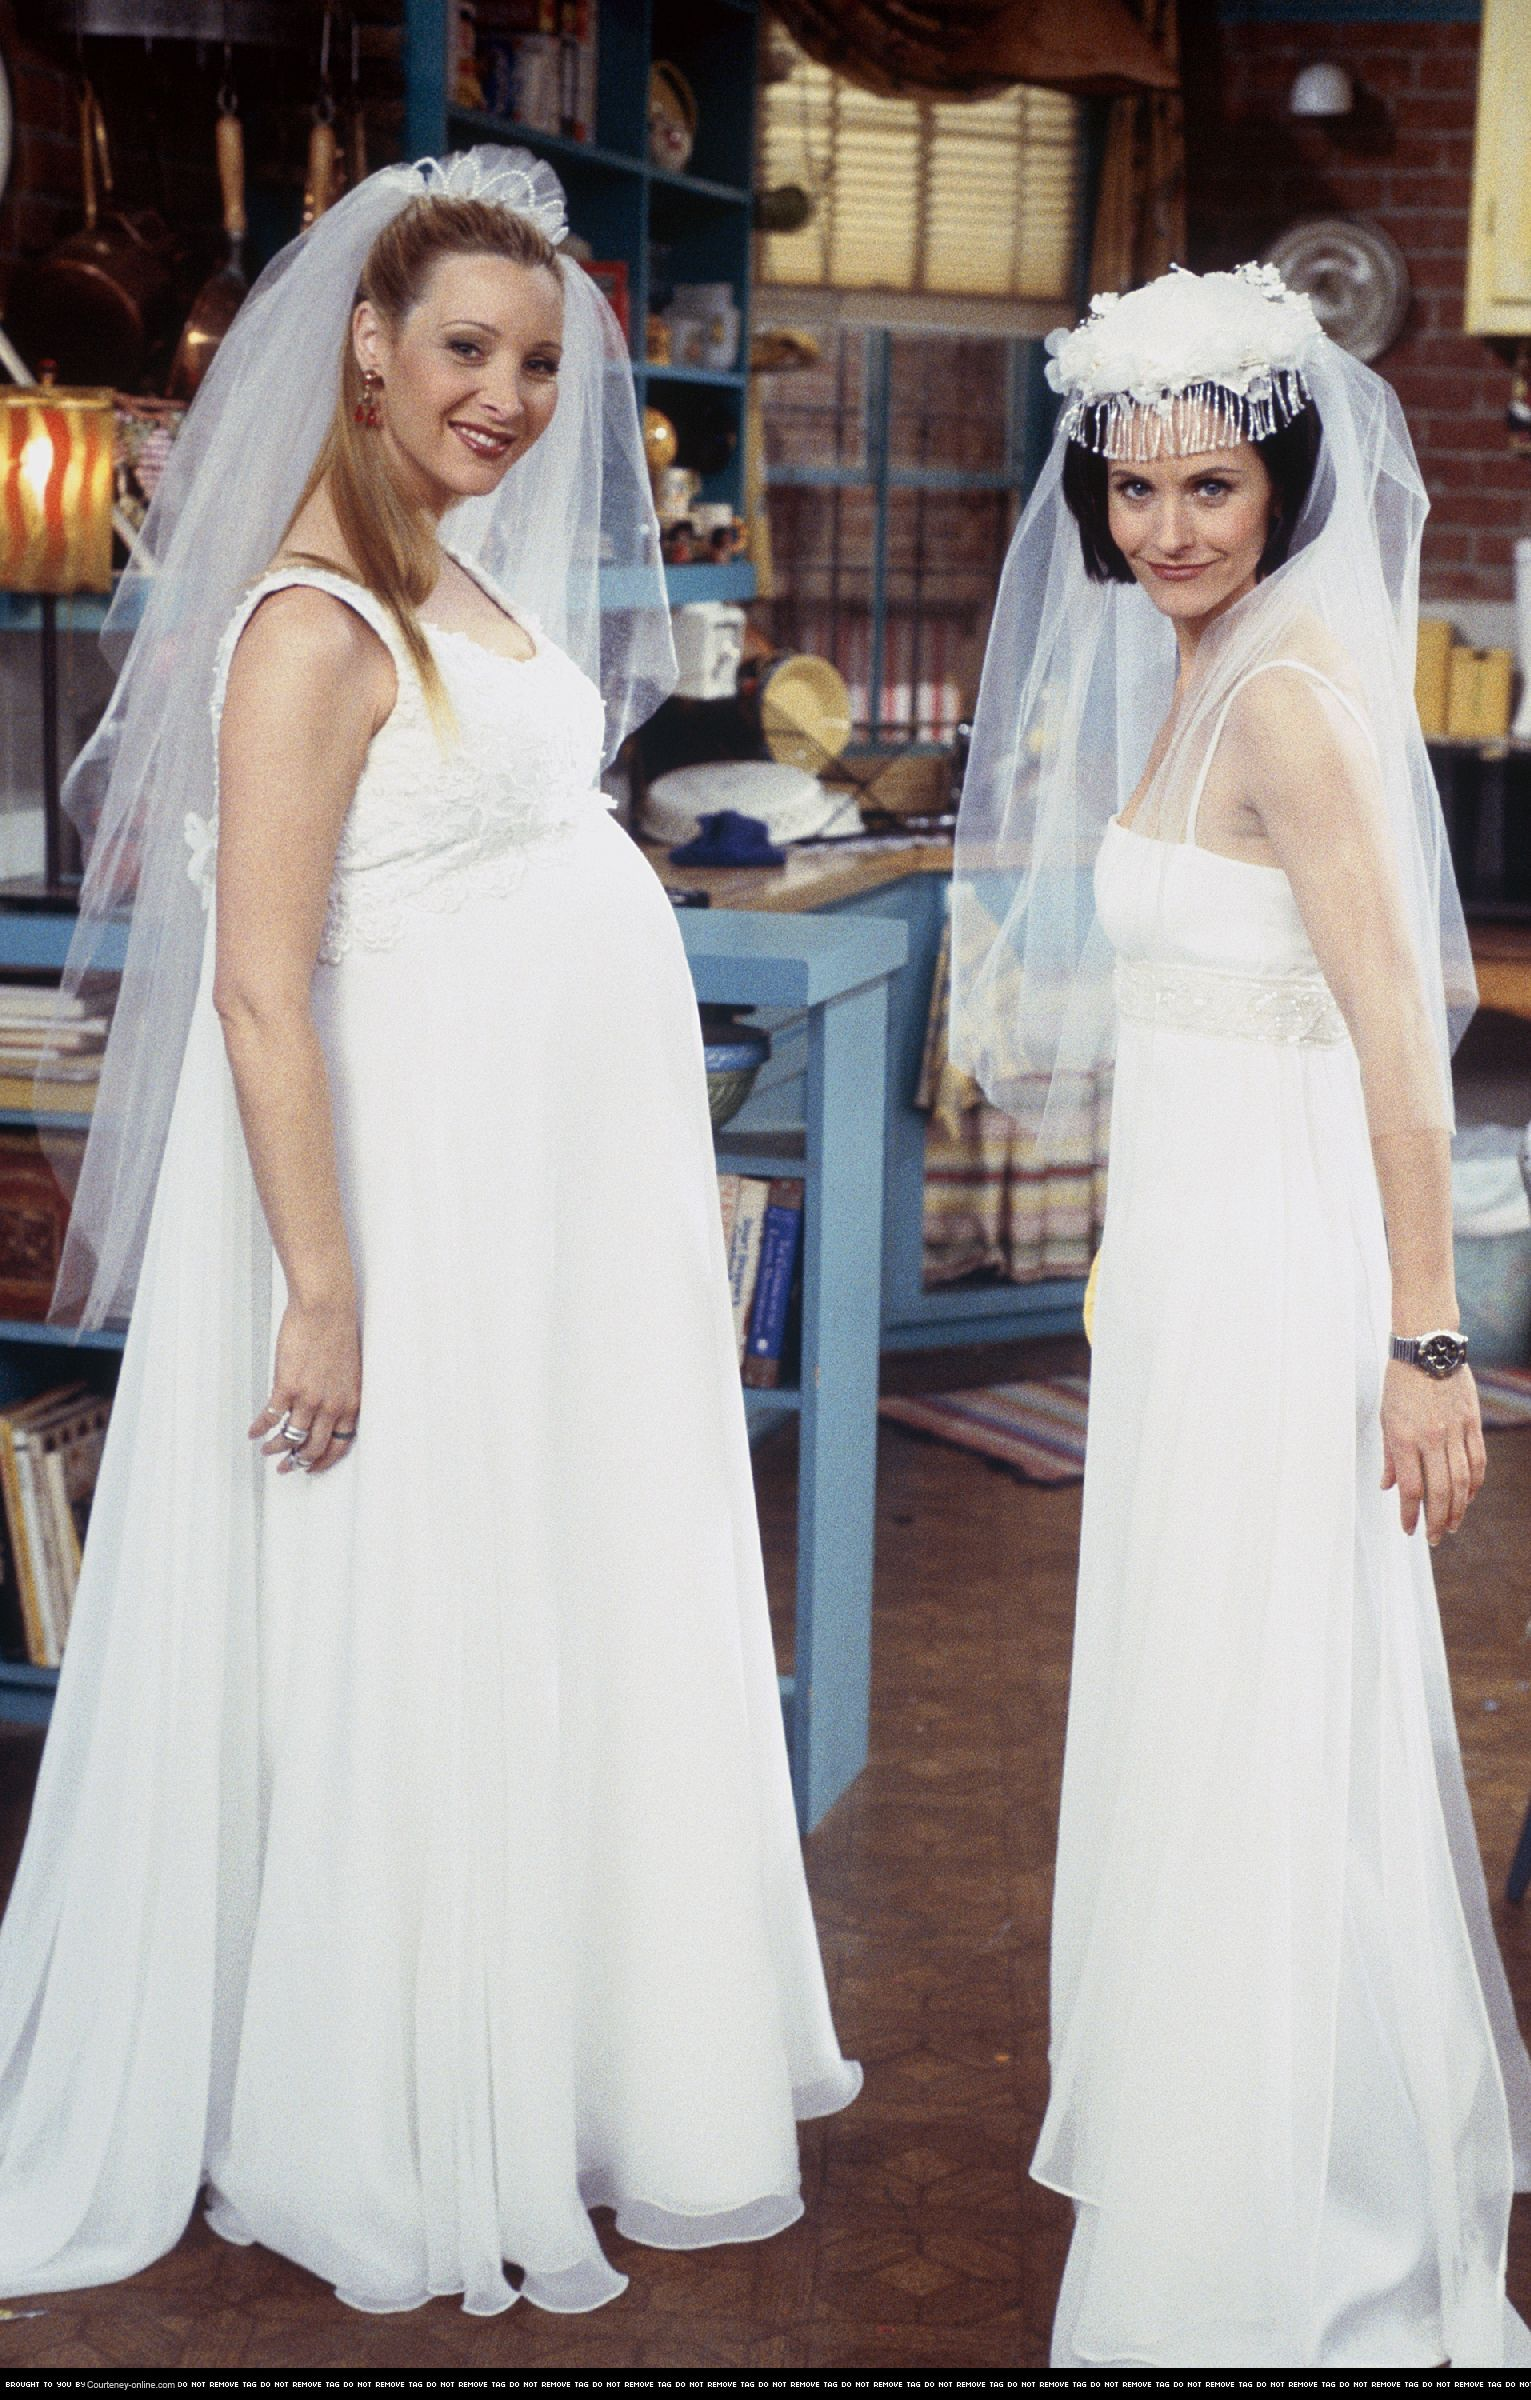 Phoebe and monica with wedding dresses friends pinterest for Friends wedding dress